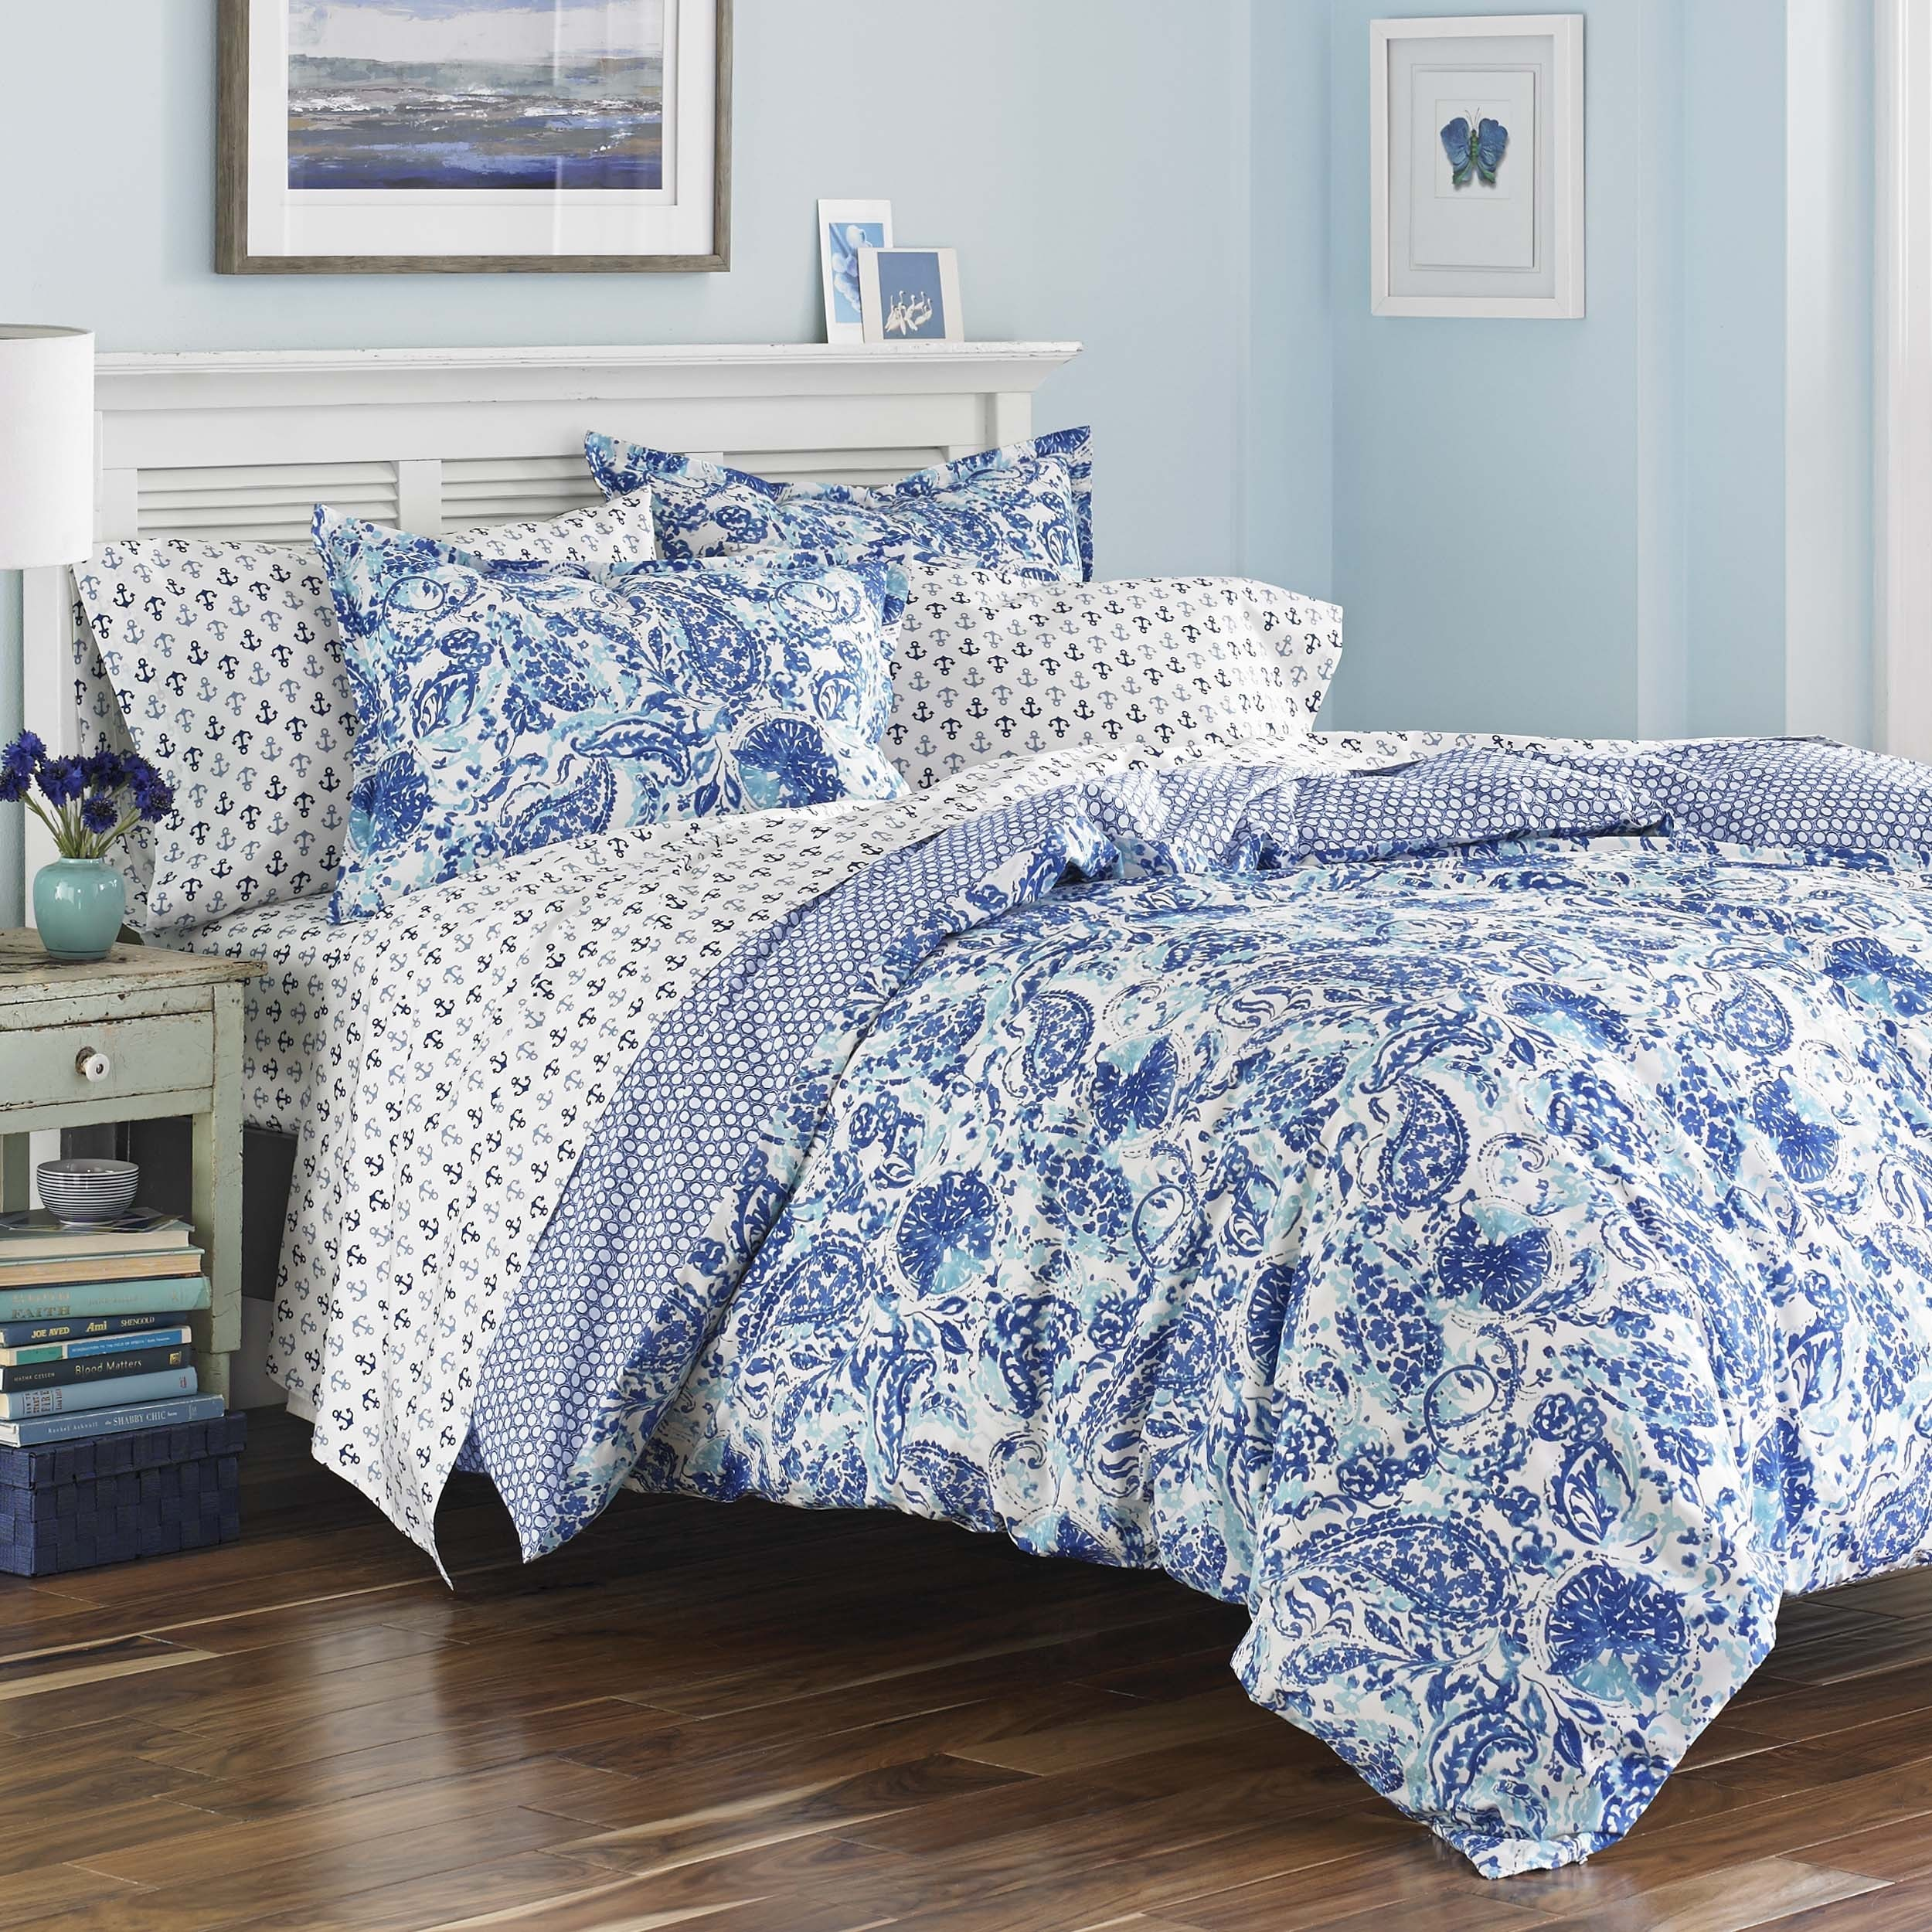 Poppy Fritz Brooke Cobalt And White Paisley Cotton Duvet Cover Set